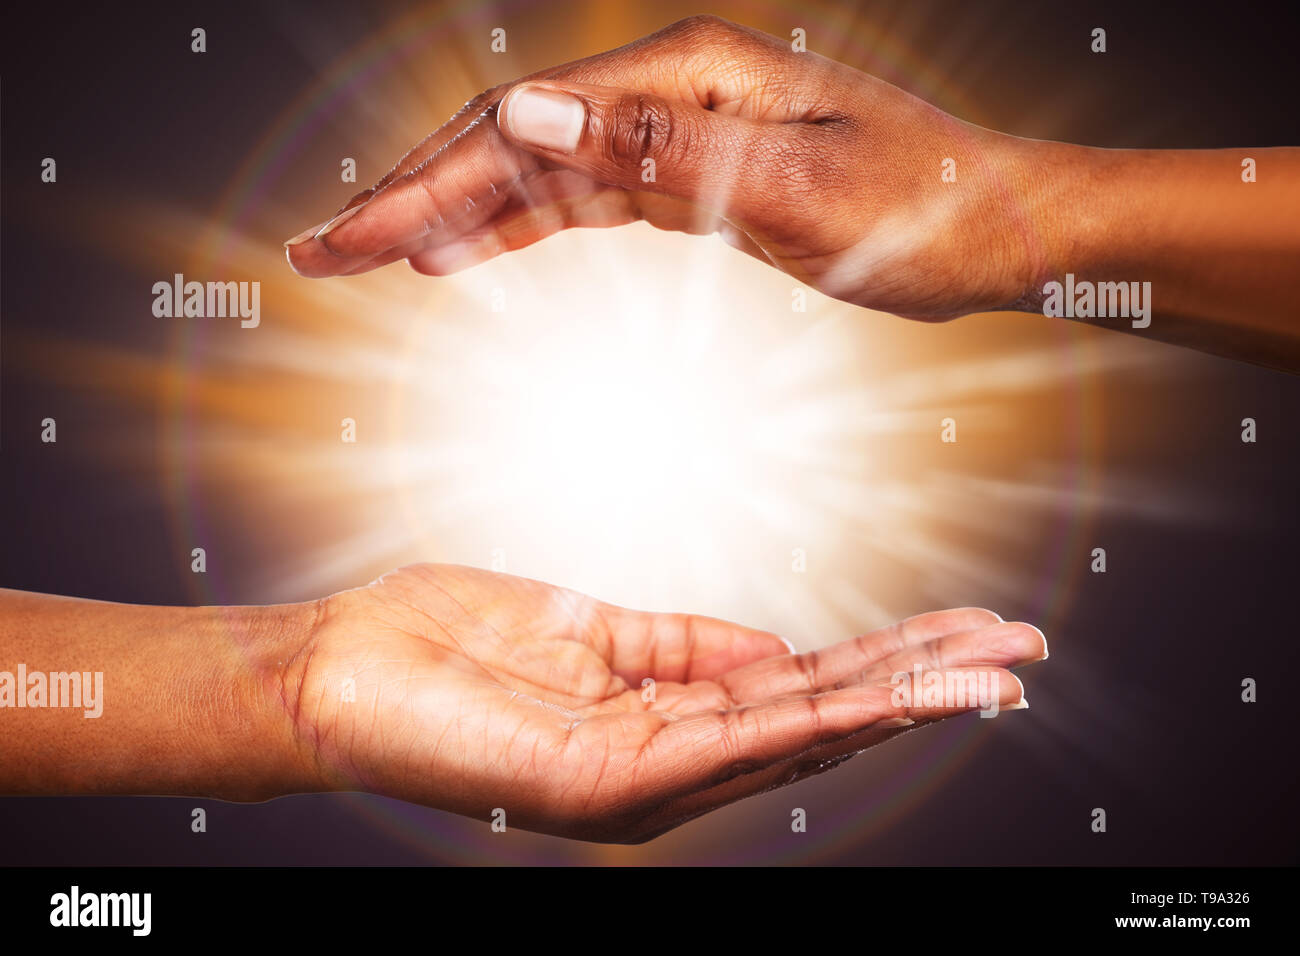 Close-up Of Mysterious Glowing Power In The Hands Stock Photo - Alamy